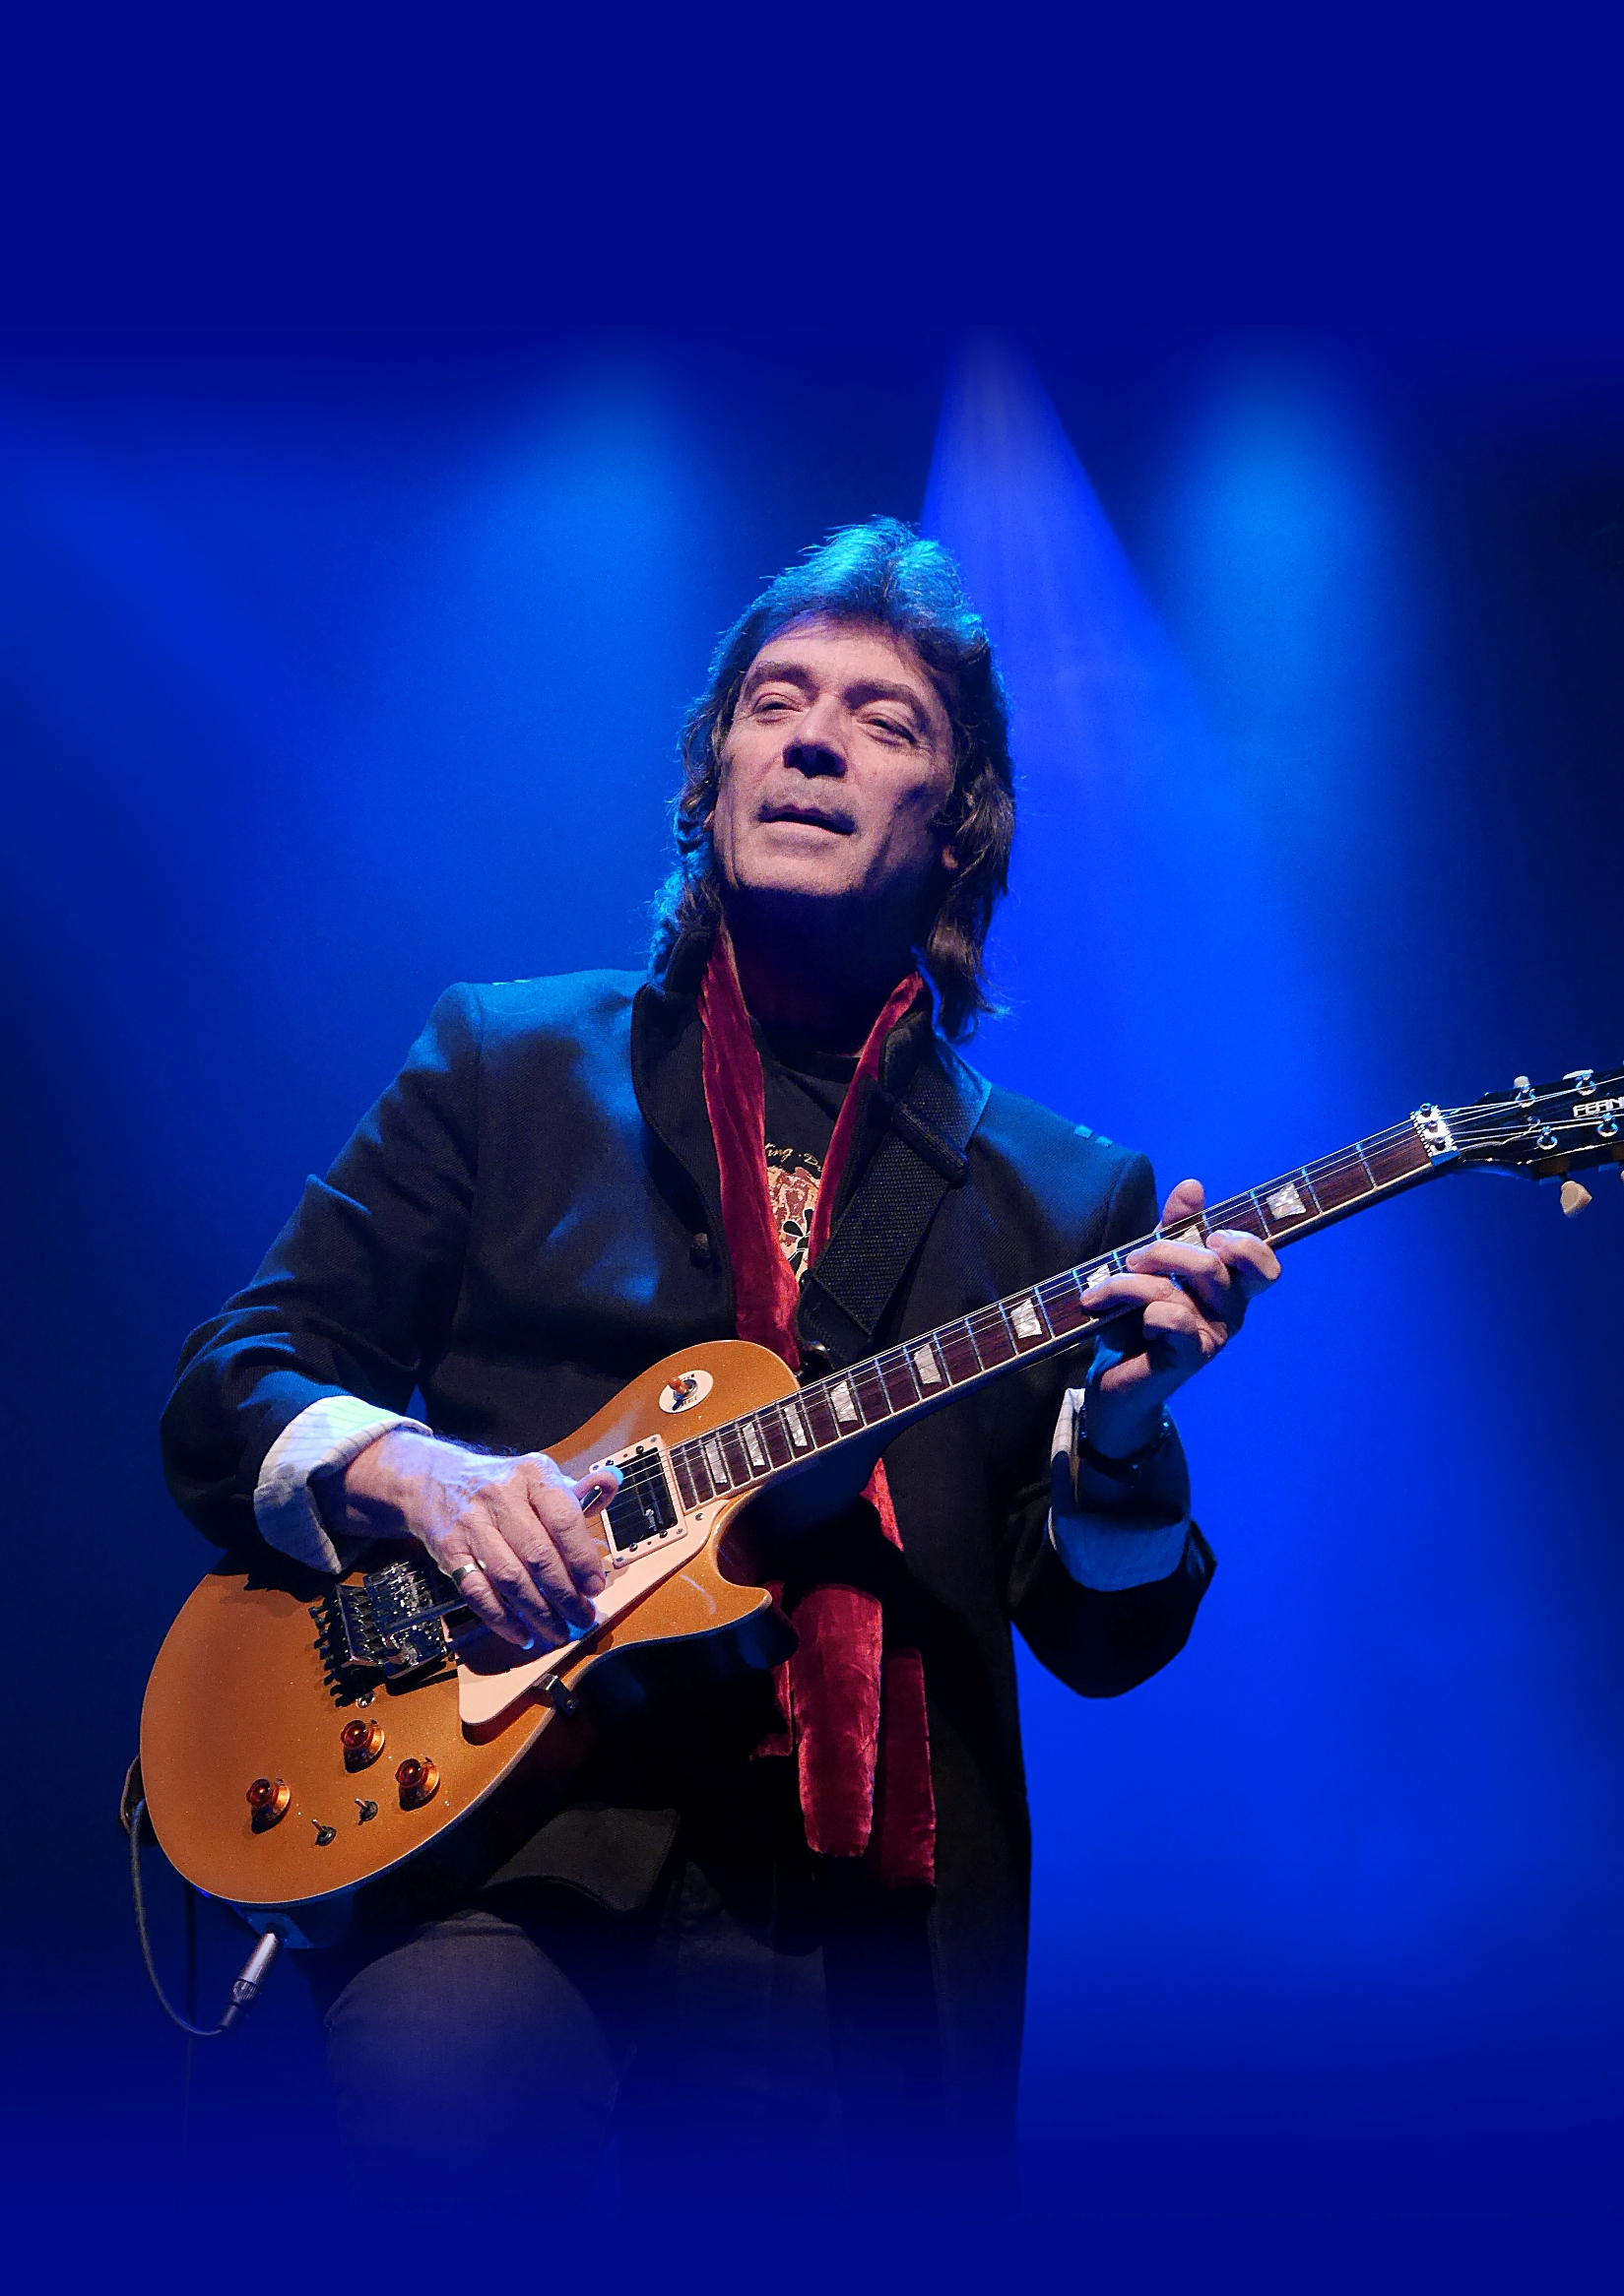 INTERVISTA STEVE HACKETT a Pordenone Blues il 16.07.19